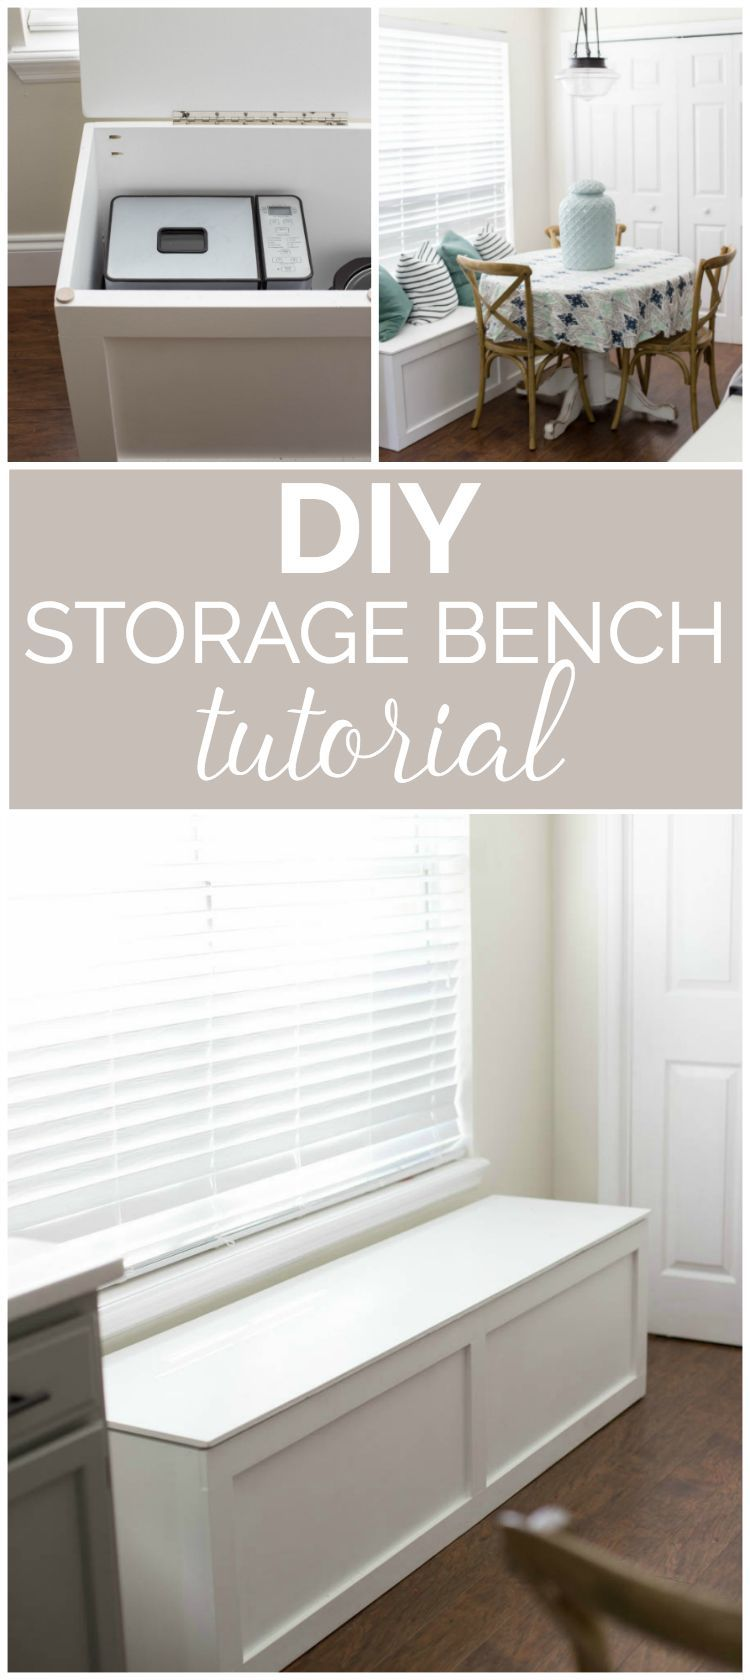 Wood Storage Bench Diy In 2020 Diy Storage Bench Diy Entryway Storage Window Seat Storage Bench